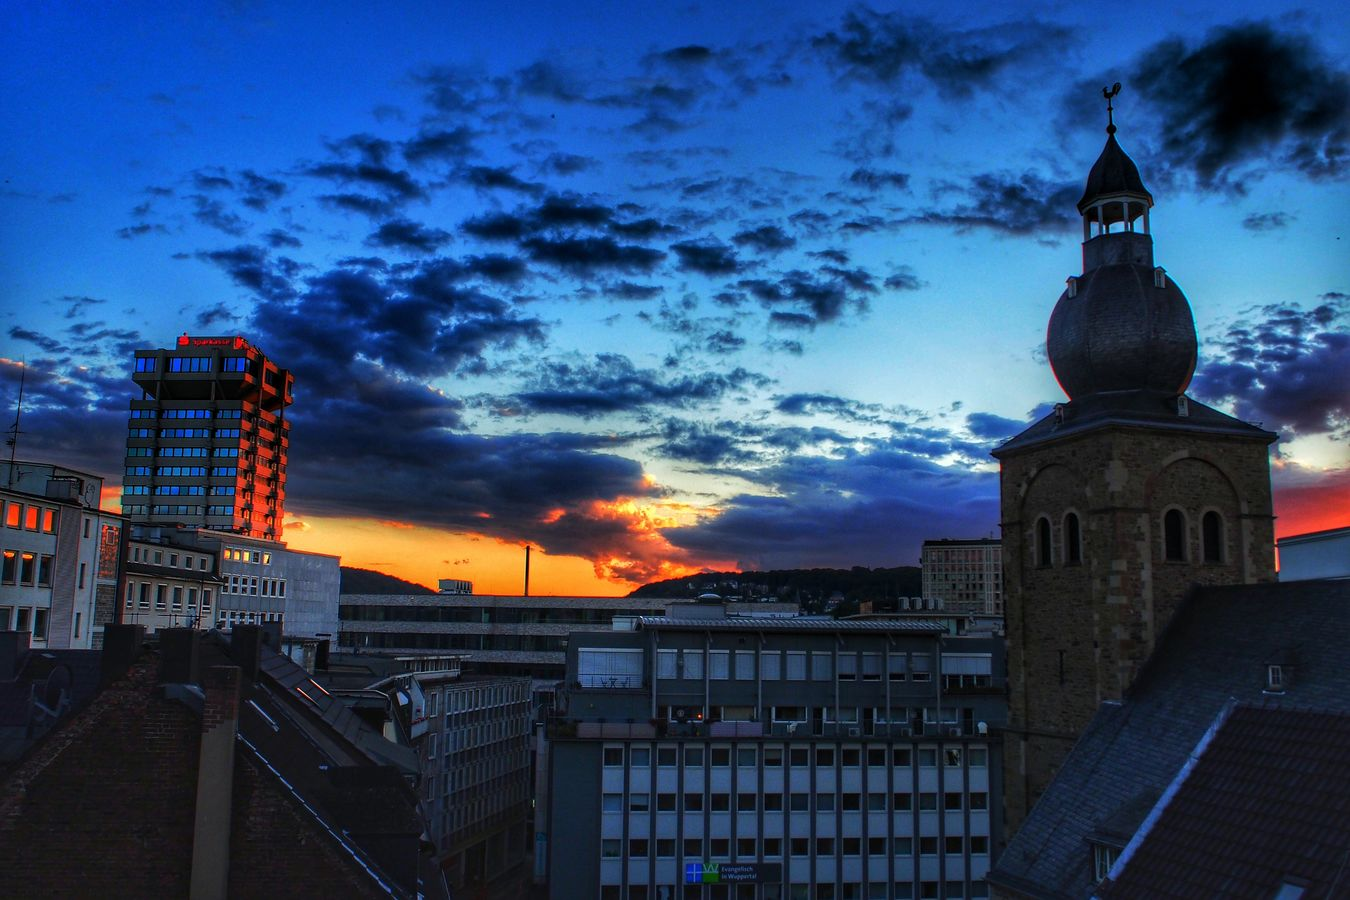 Vintage Taking Photos Hanging Out Hi! Rooftop Sunset Hobbyfotograf Olympuspenepl6 Hobbyphotography Wuppertal Elberfeld First Eyeem Photo Enjoying Life Hello World OlympusPEN Wuppertal HDR Hdr_lovers Hdrphotography